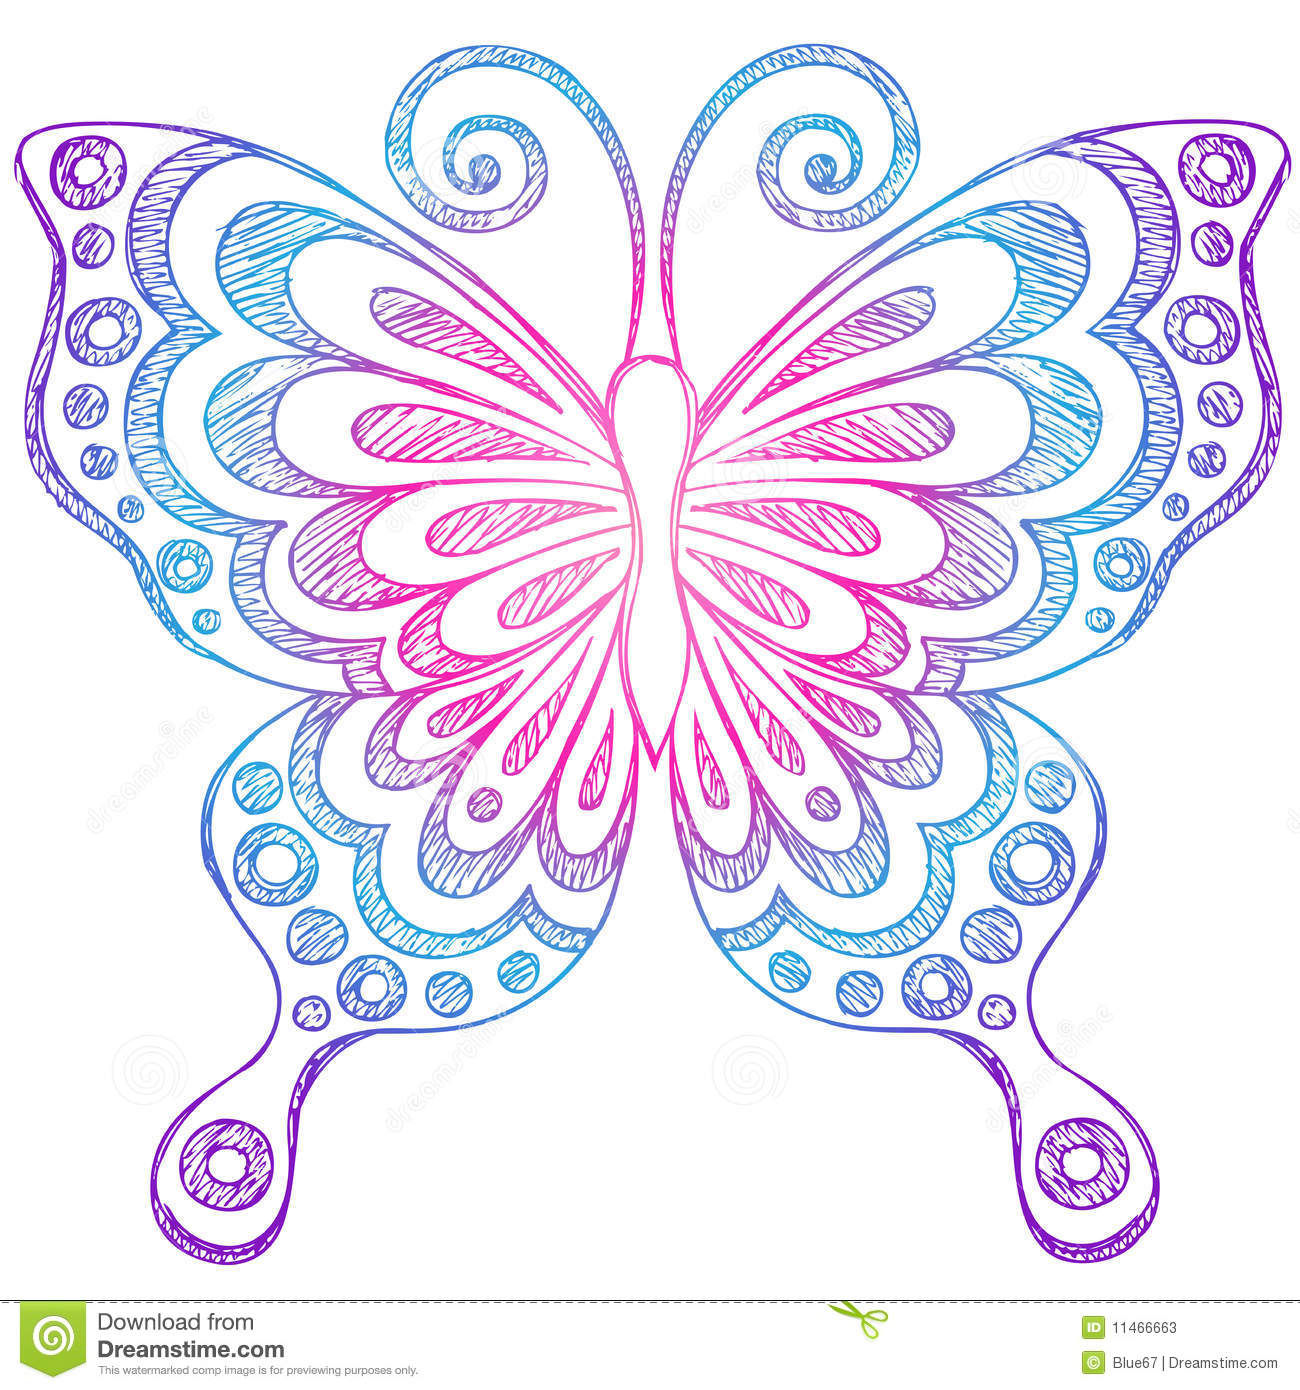 Fancy Adult Colouring Sheets Motif - Pink Coloring Sheet ...